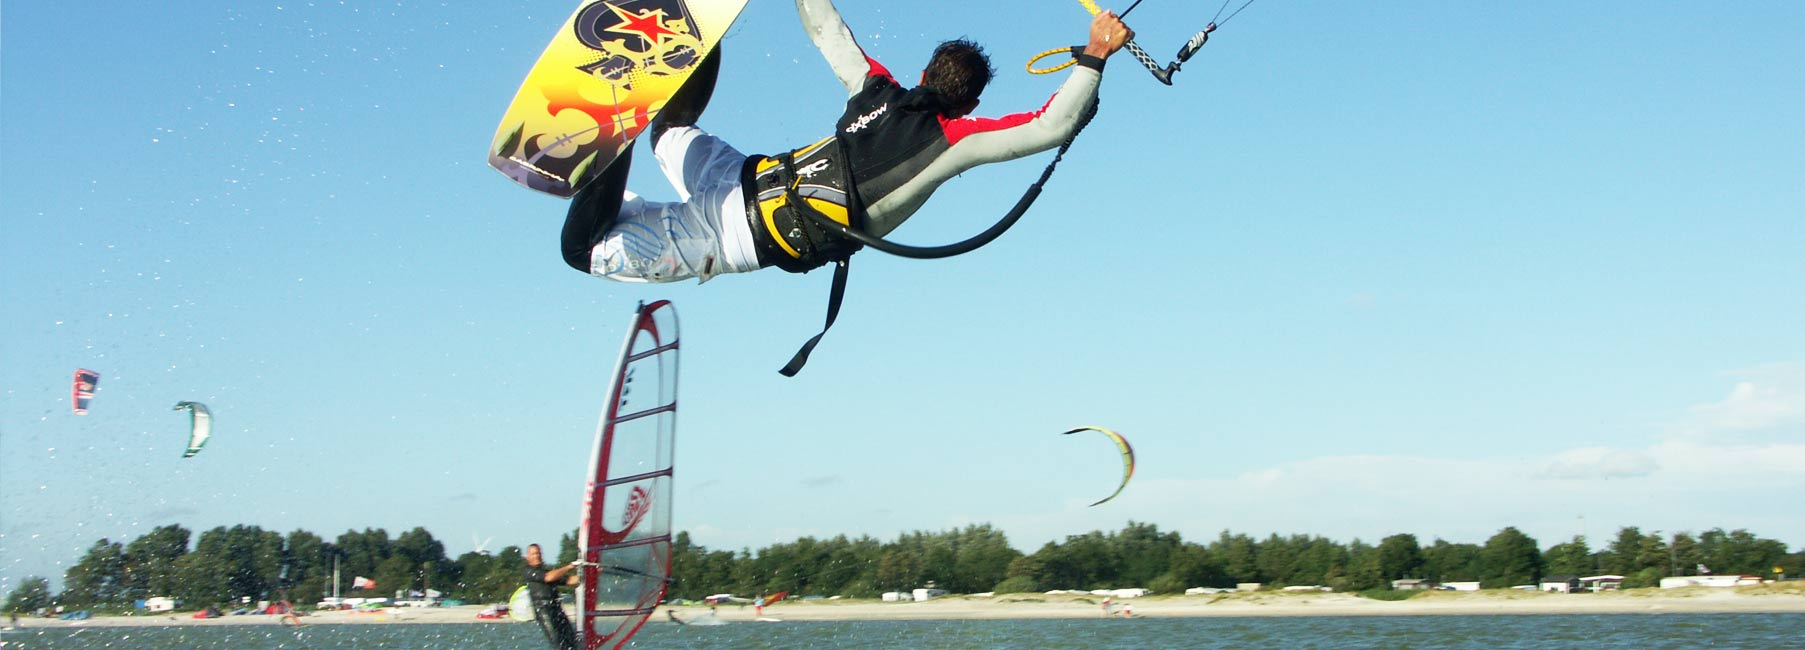 Kitesurfen en windsurfen in Workum